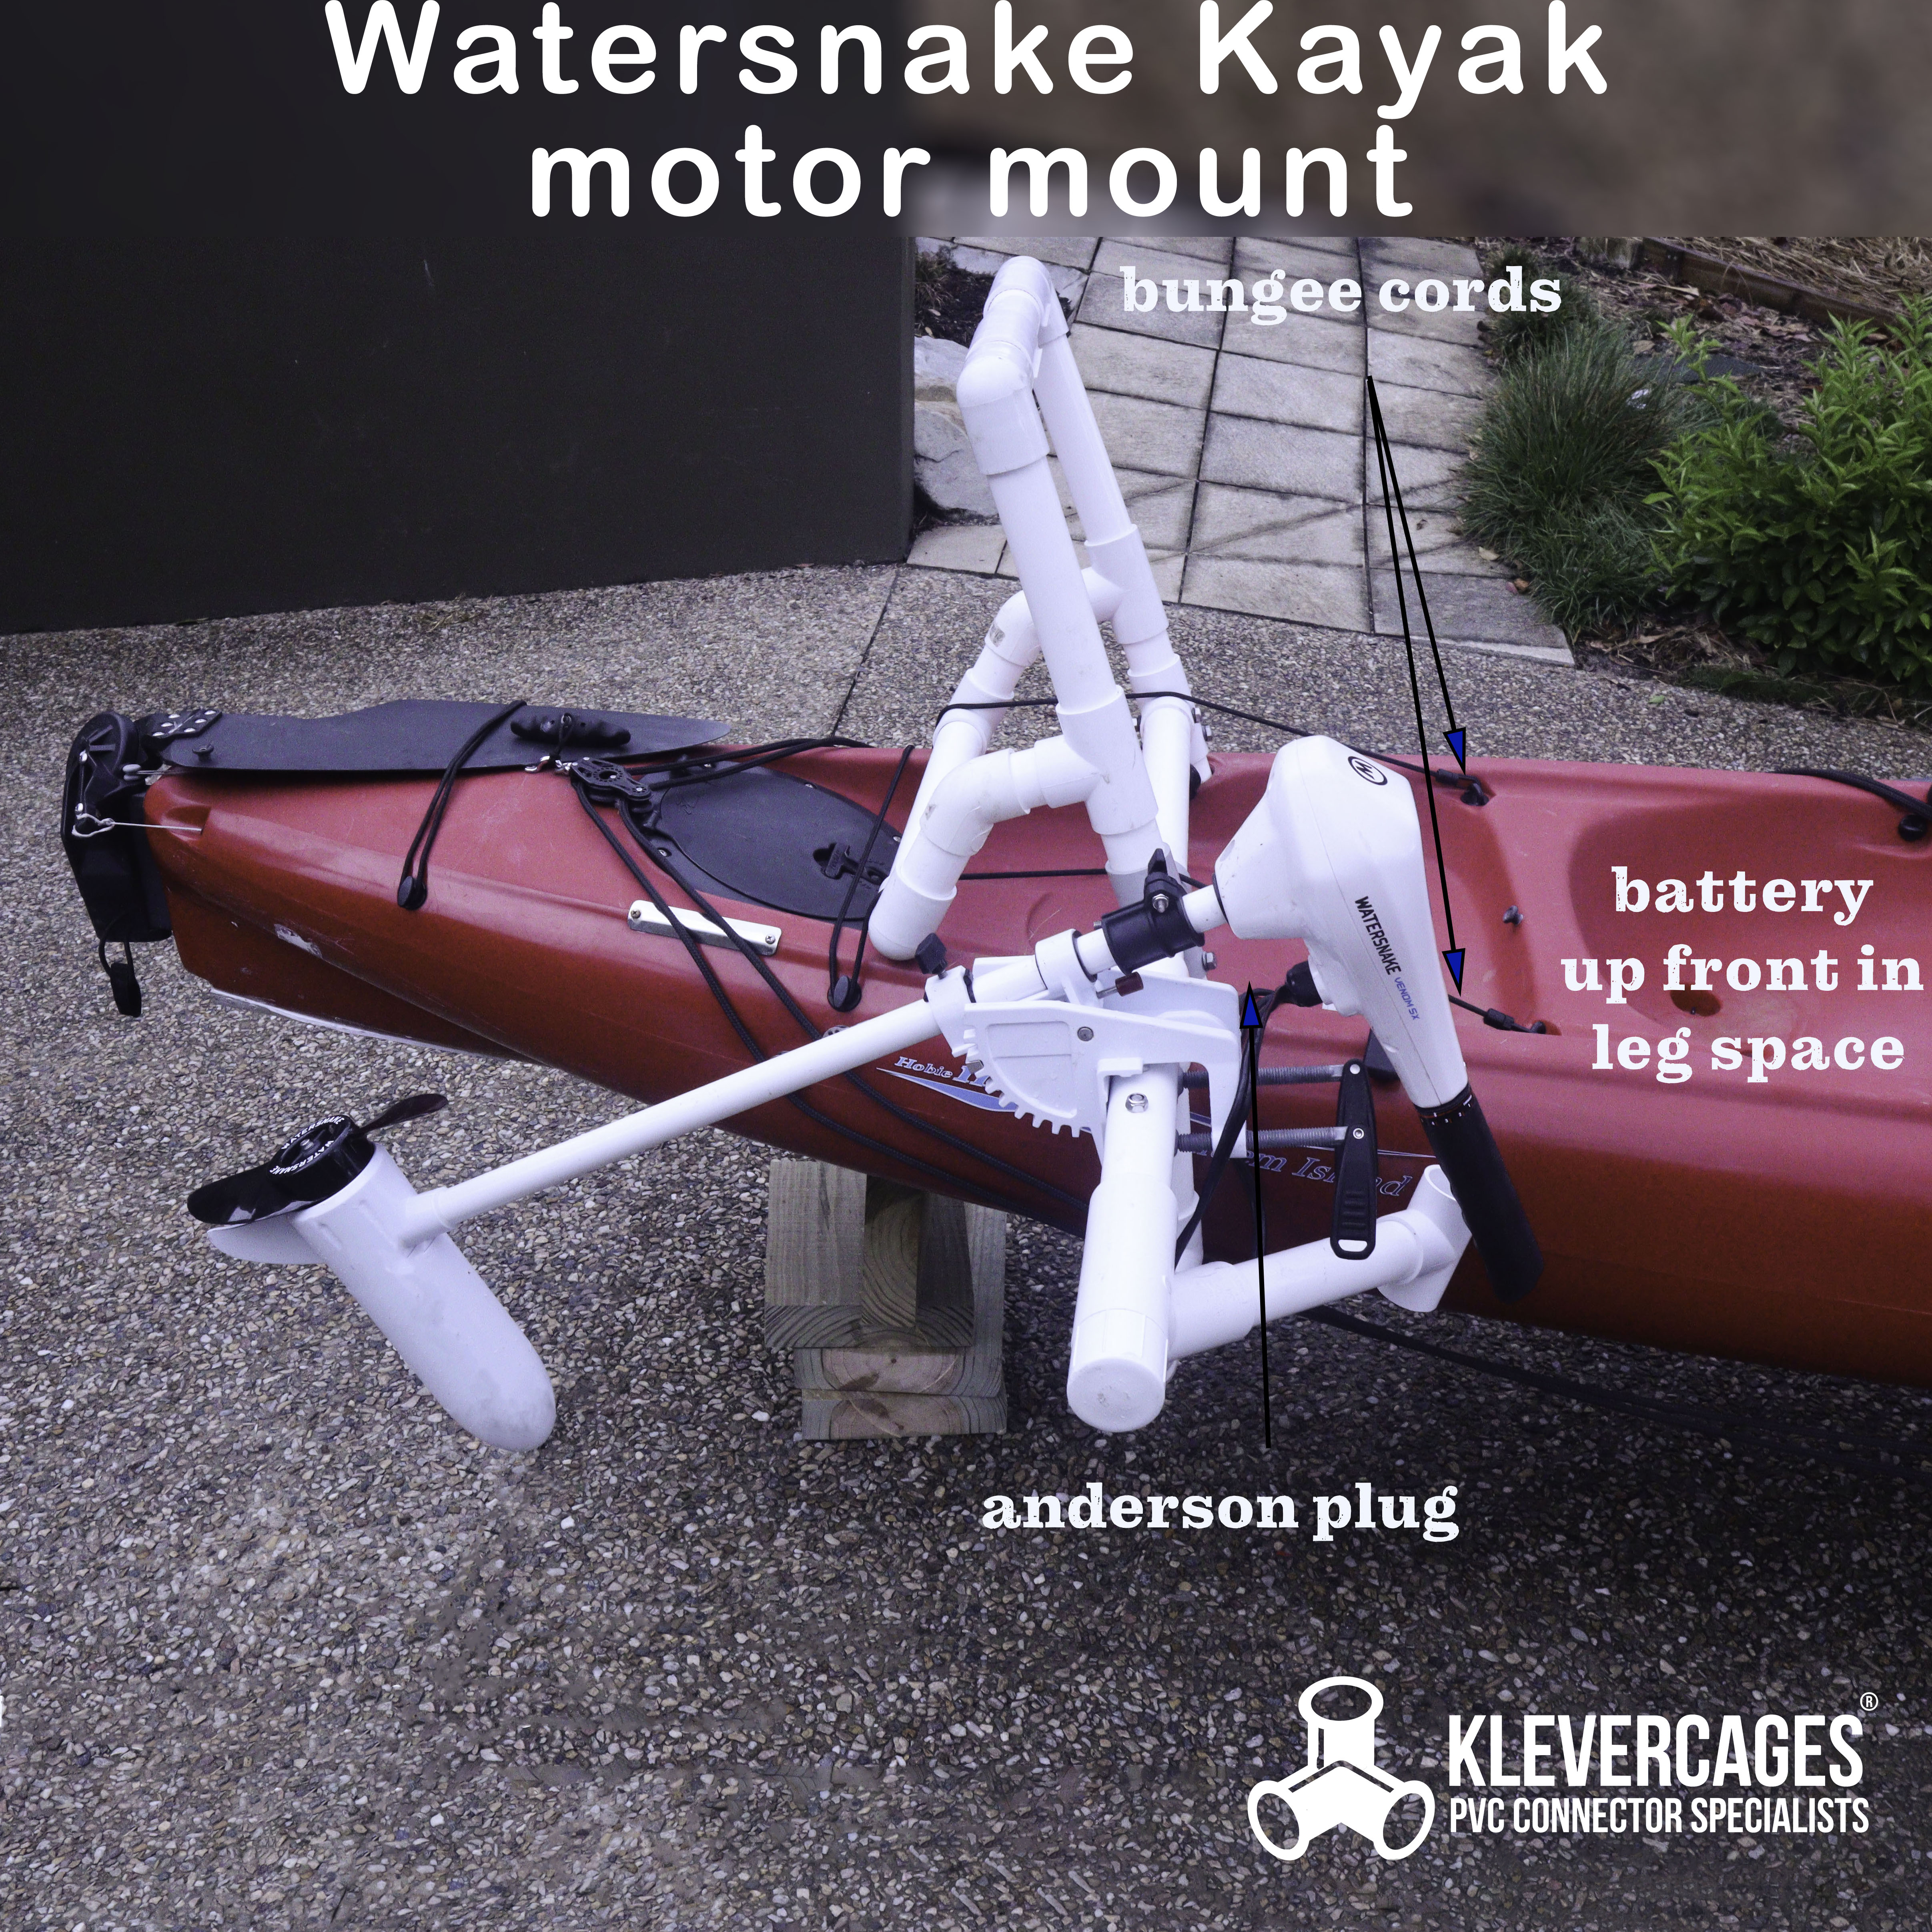 Watersnake kayak motor mount built with PVC pipe and connectors